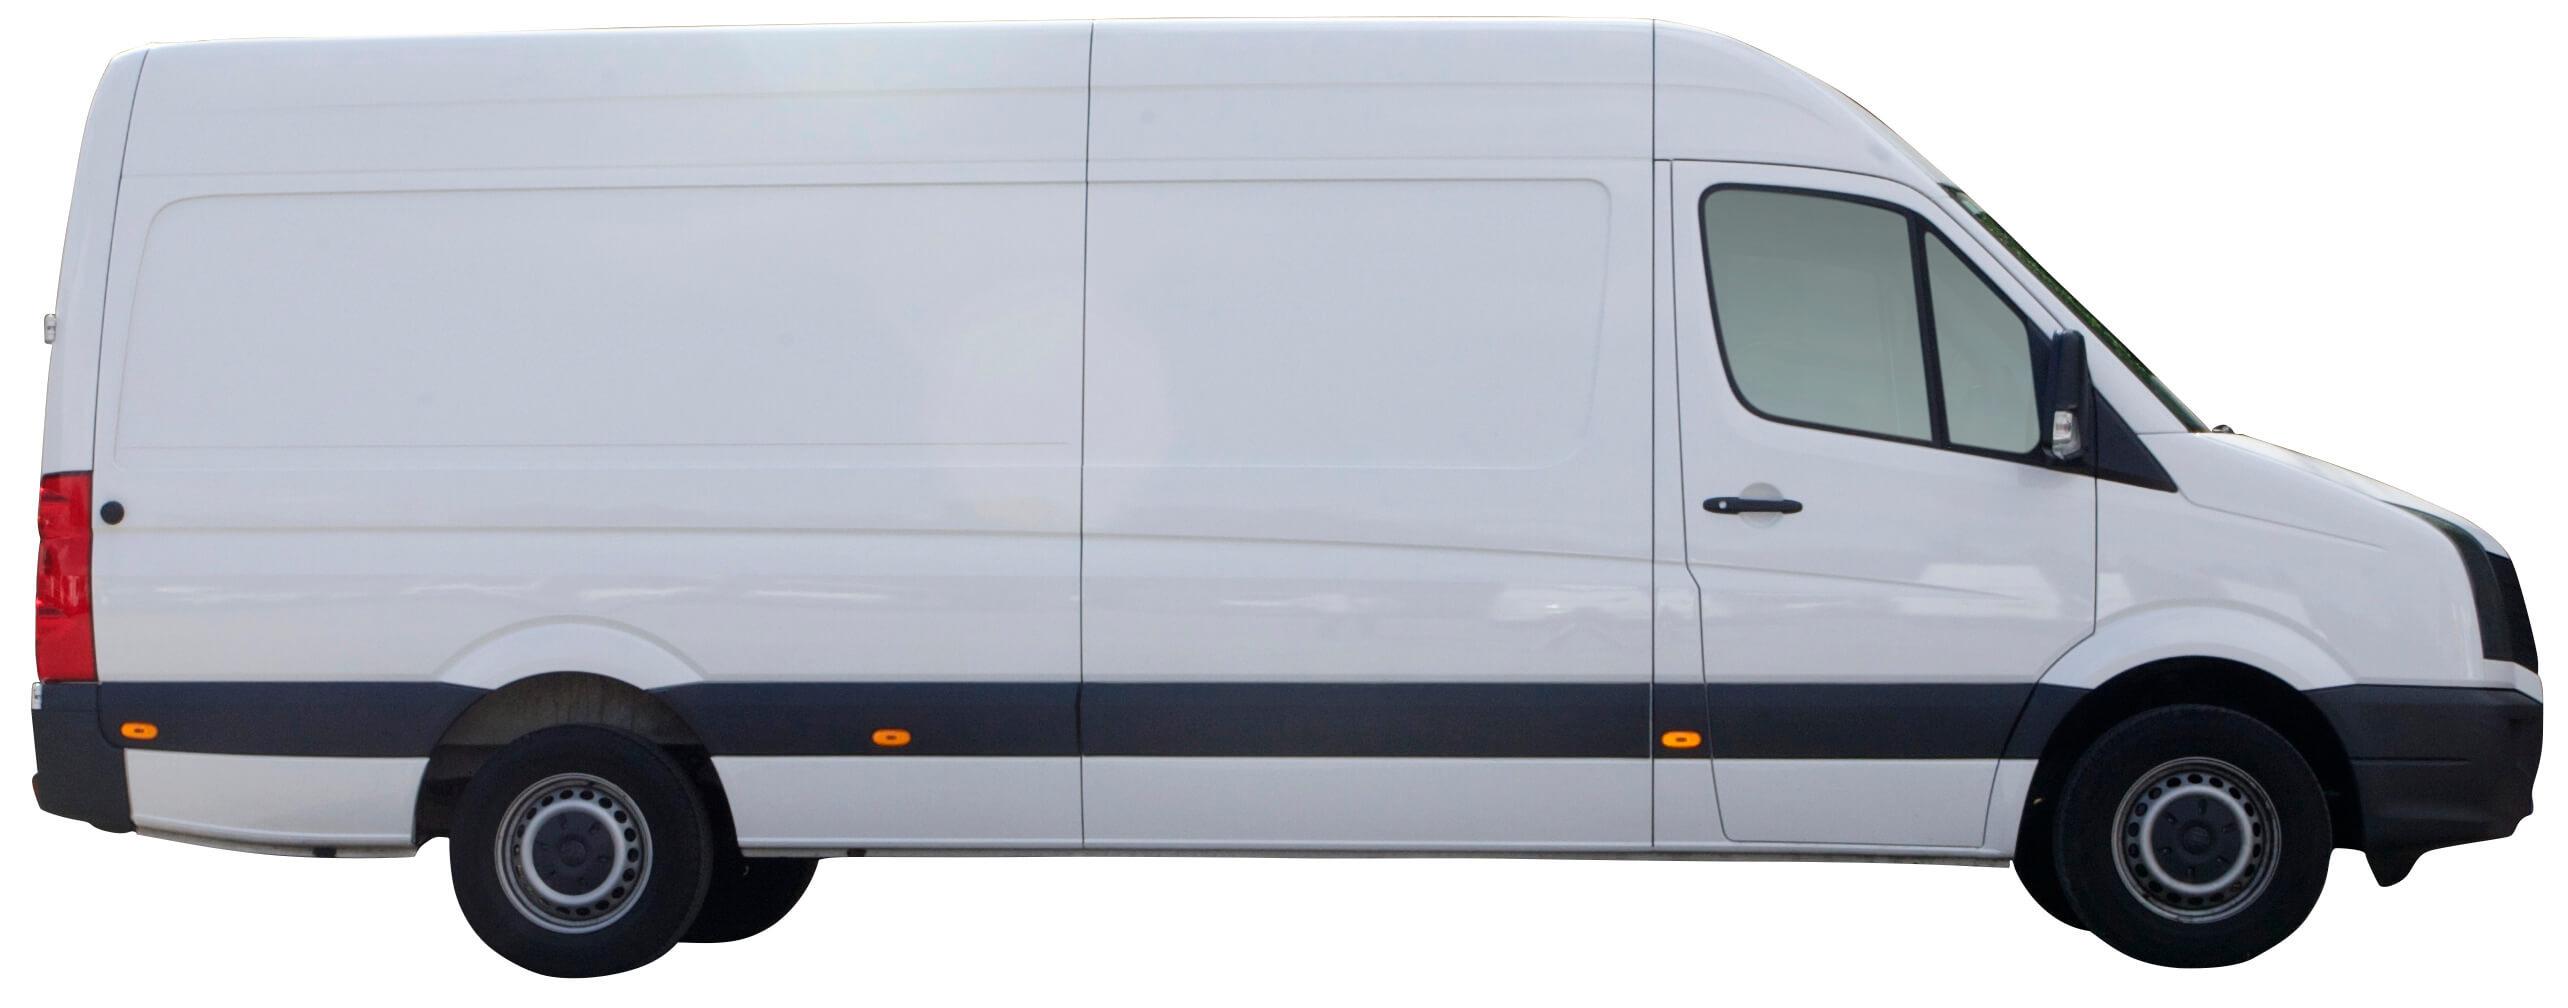 extended long wheel base van hire yorkshire arrow self drive. Black Bedroom Furniture Sets. Home Design Ideas